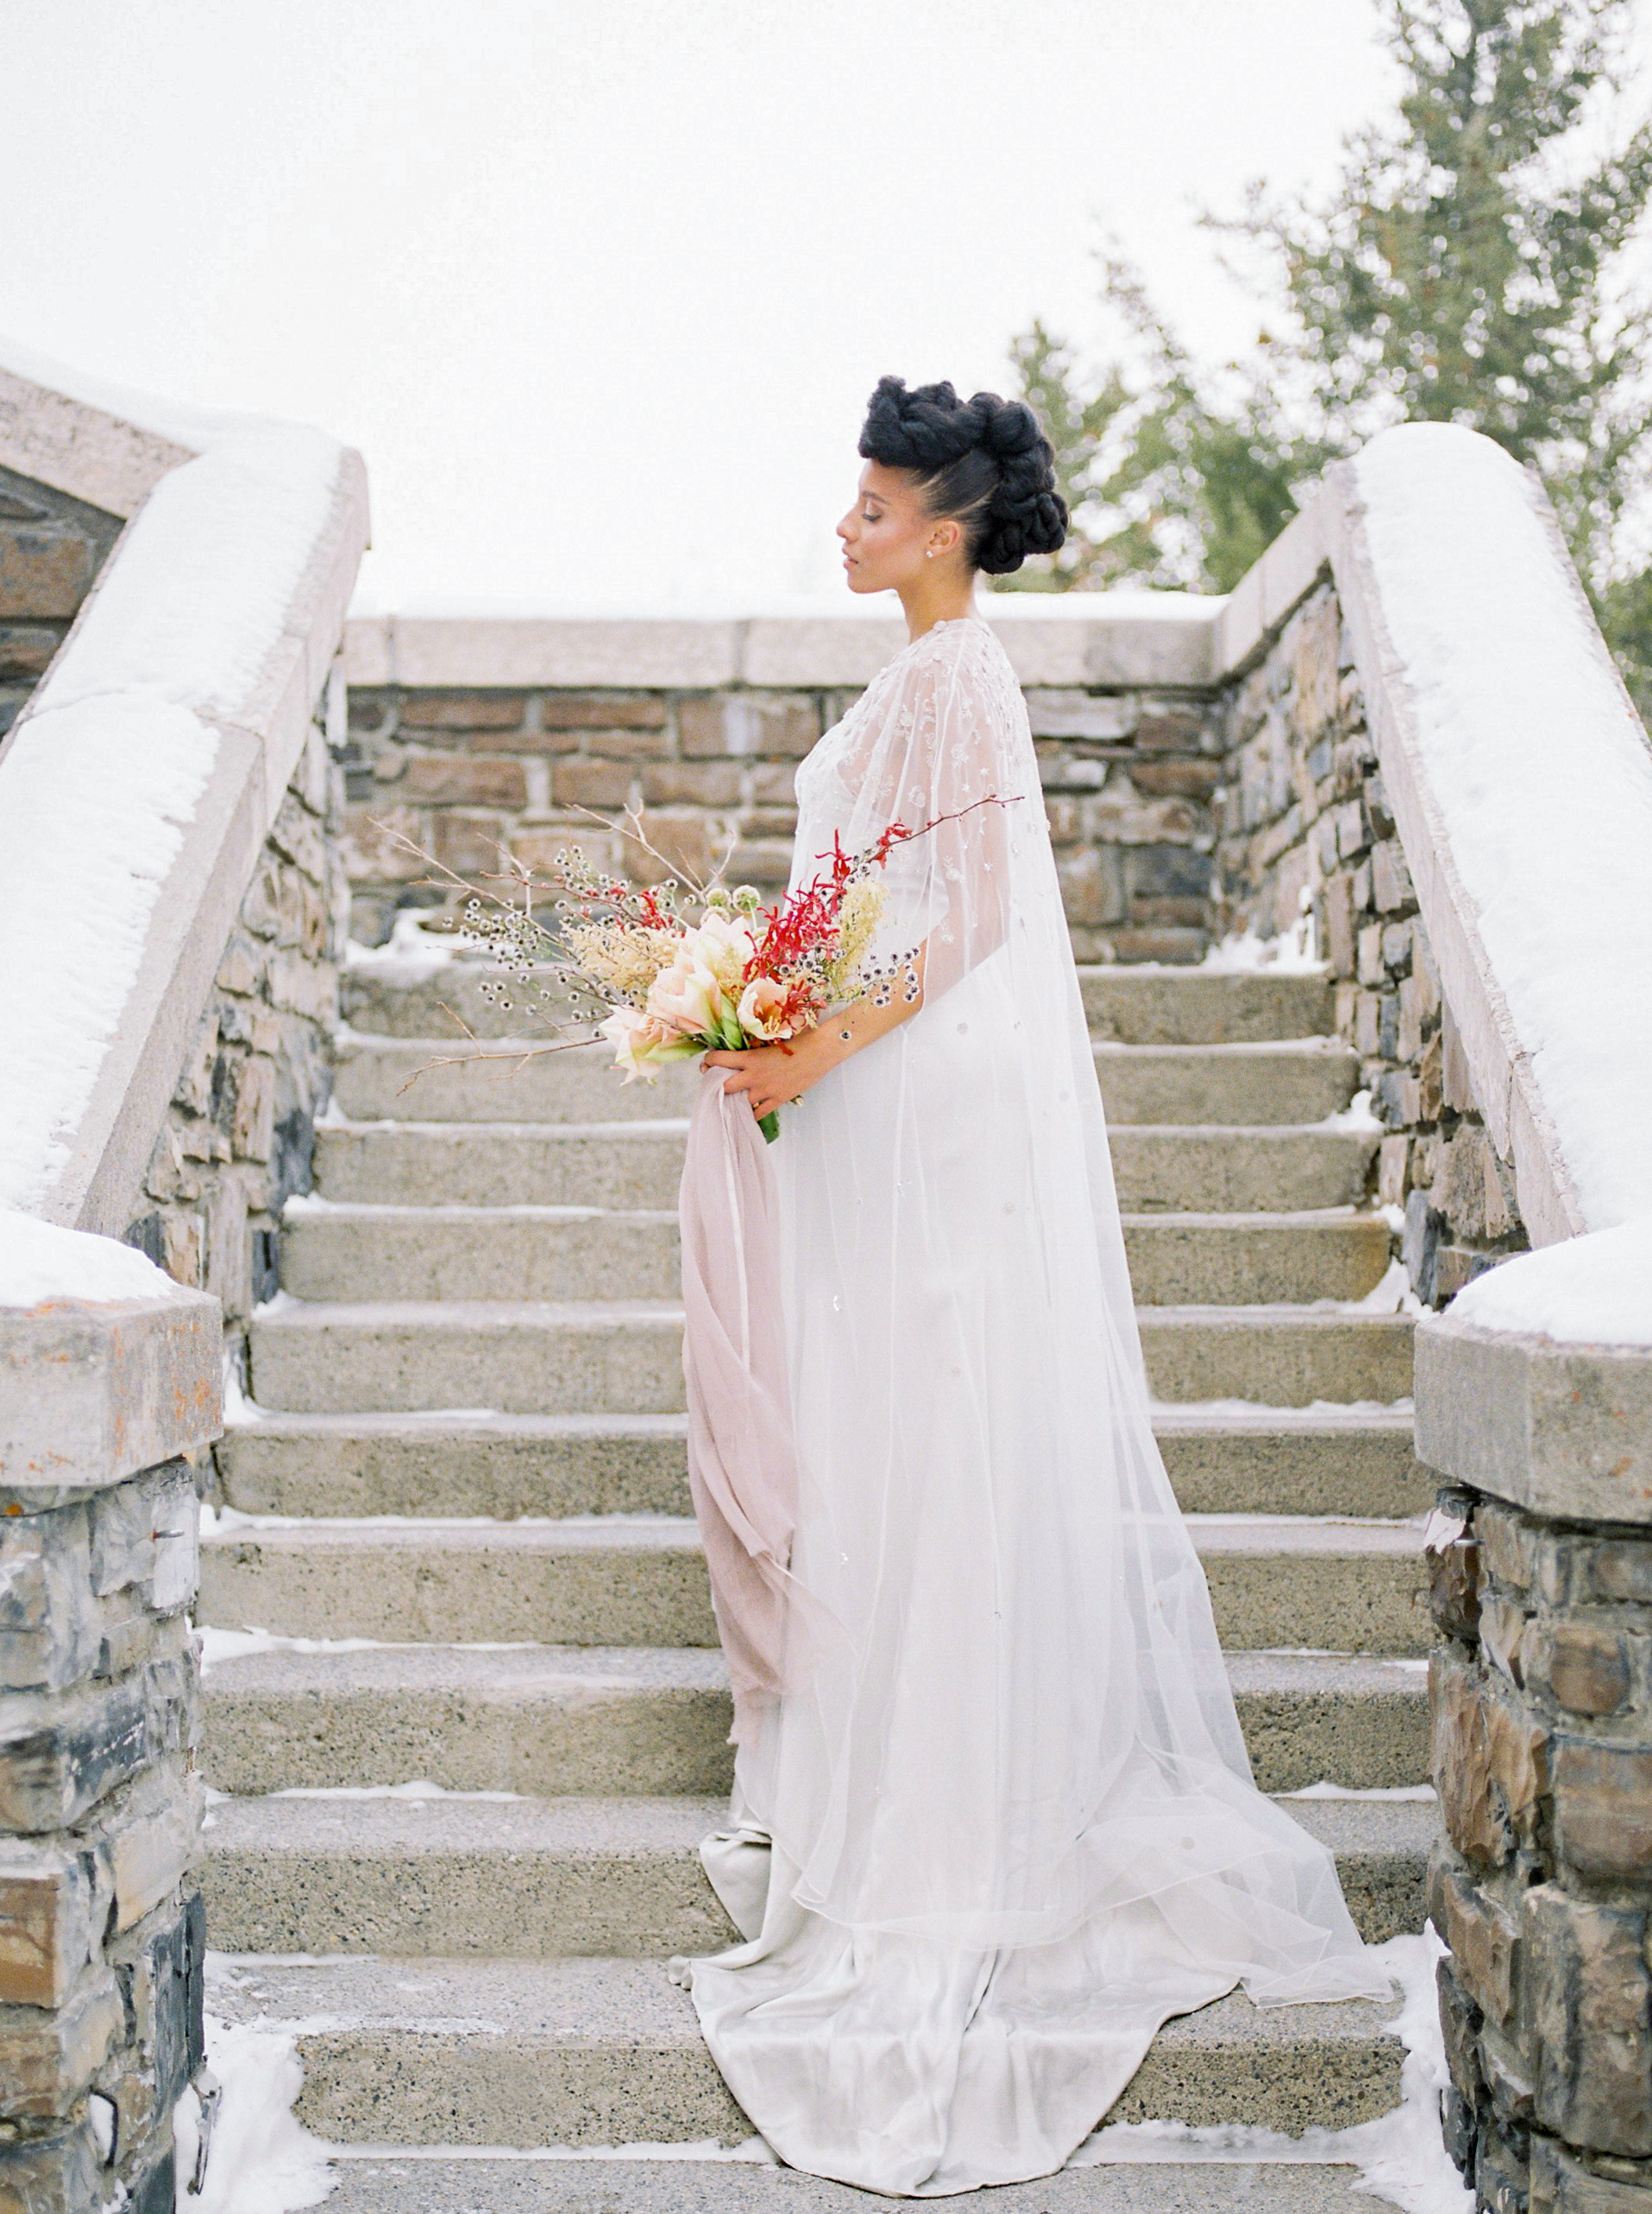 Photos by Pam Kriangkum  The grandest fairytale castle dusted in autumn snow surrounded by the majestic mountains of the Canadian Rockies was the backdrop for this stunning and refined event. This elegant day is featured in print at Grey Likes Weddings.